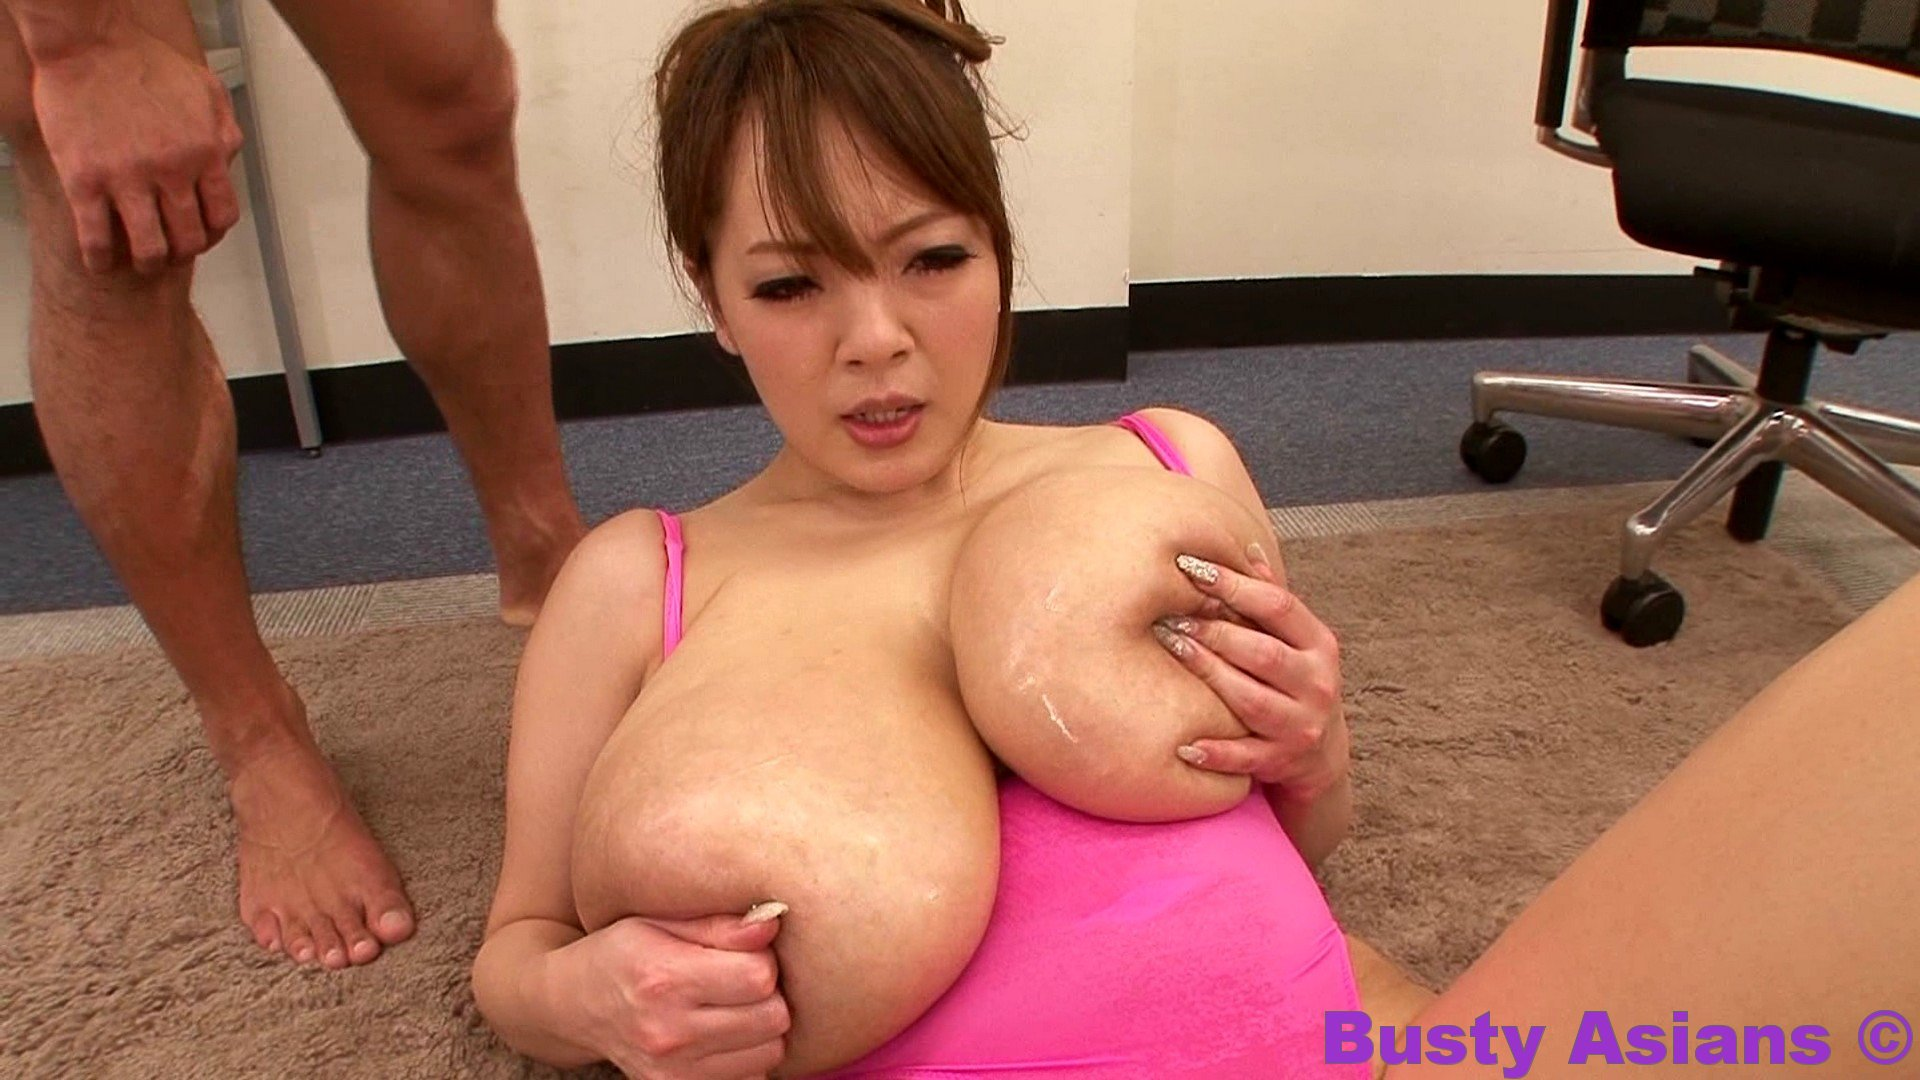 Asian Big Tits Sucking Dick